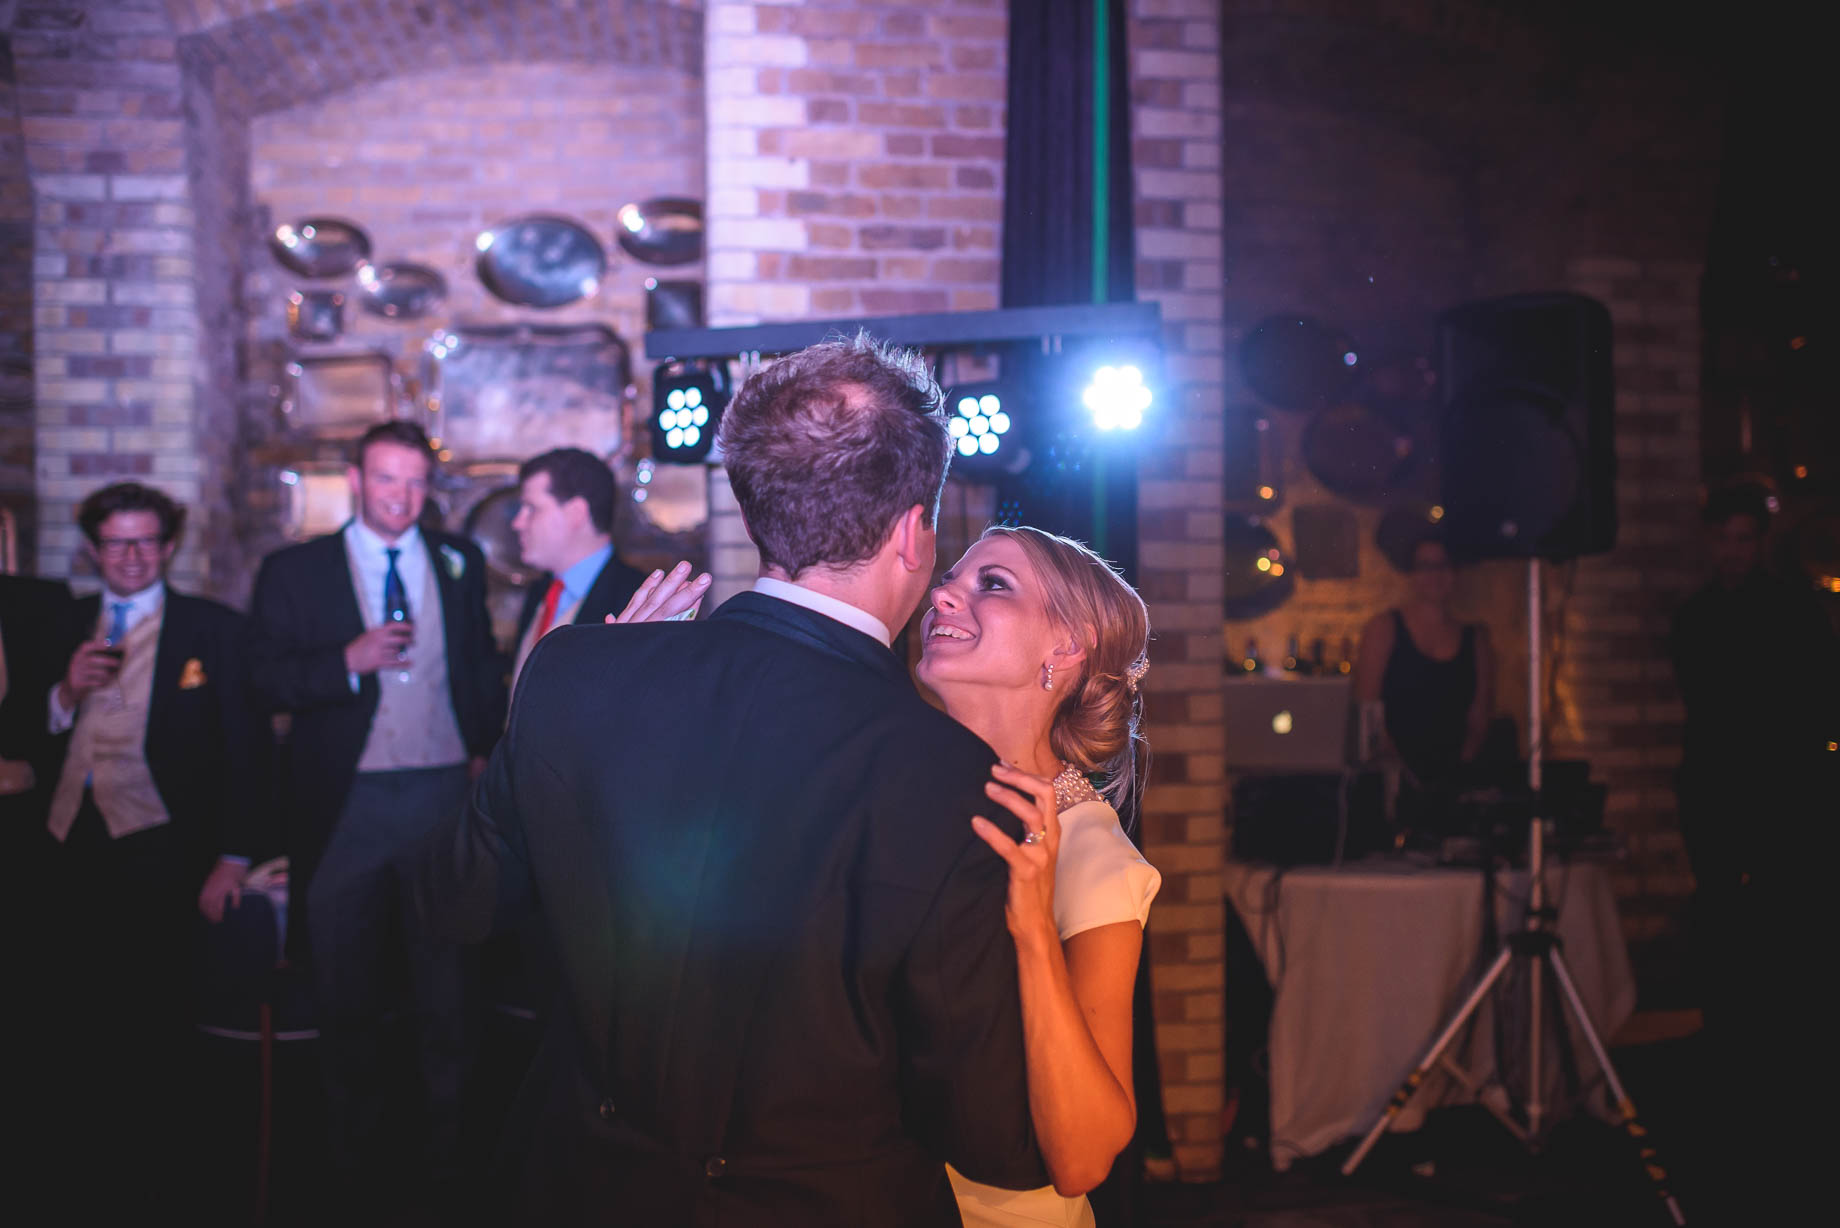 Shoreditch wedding photography - Guy Collier - Kat and Henry (195 of 200)